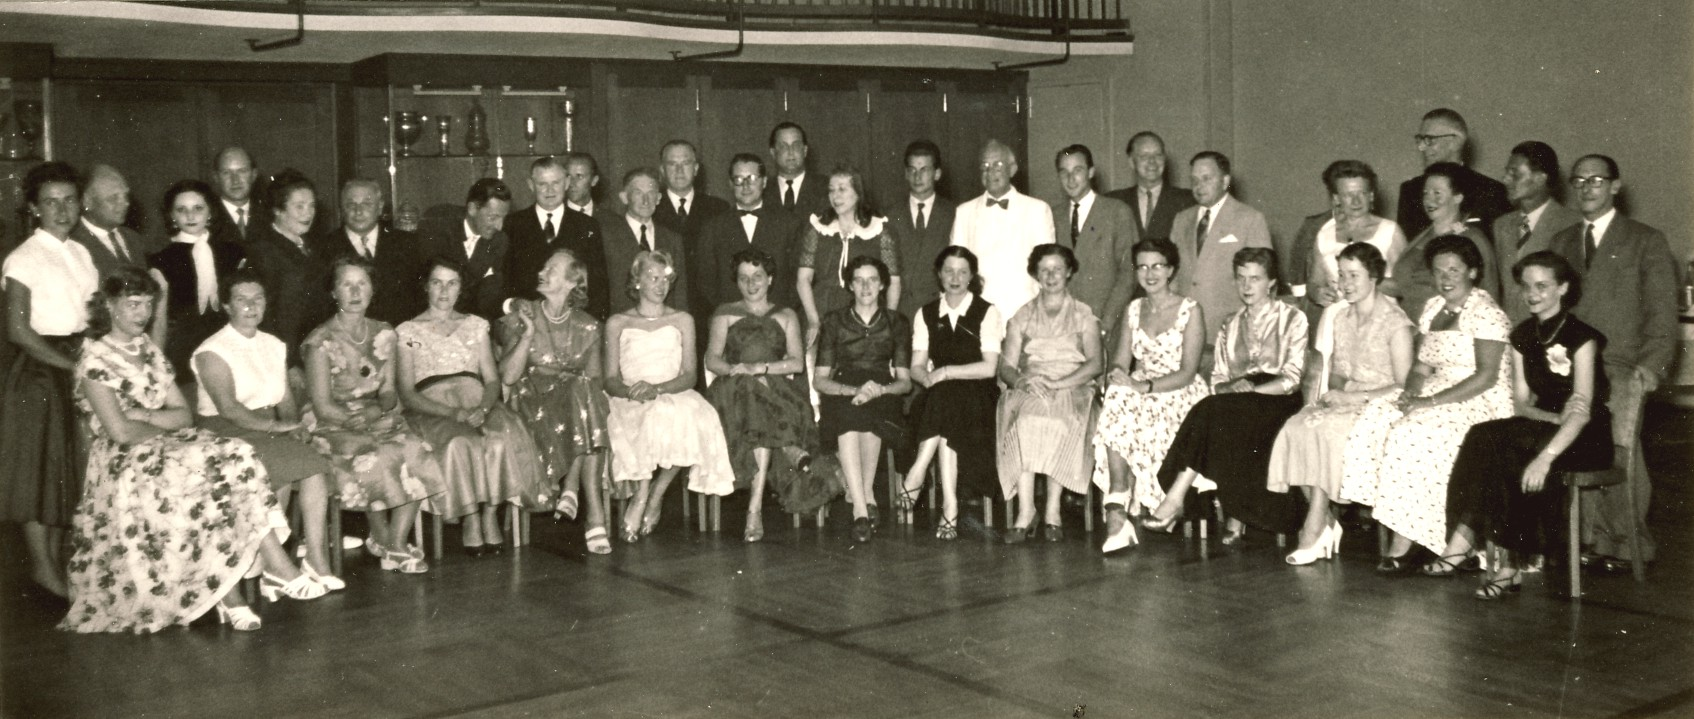 trudi-stv-kongress-1954